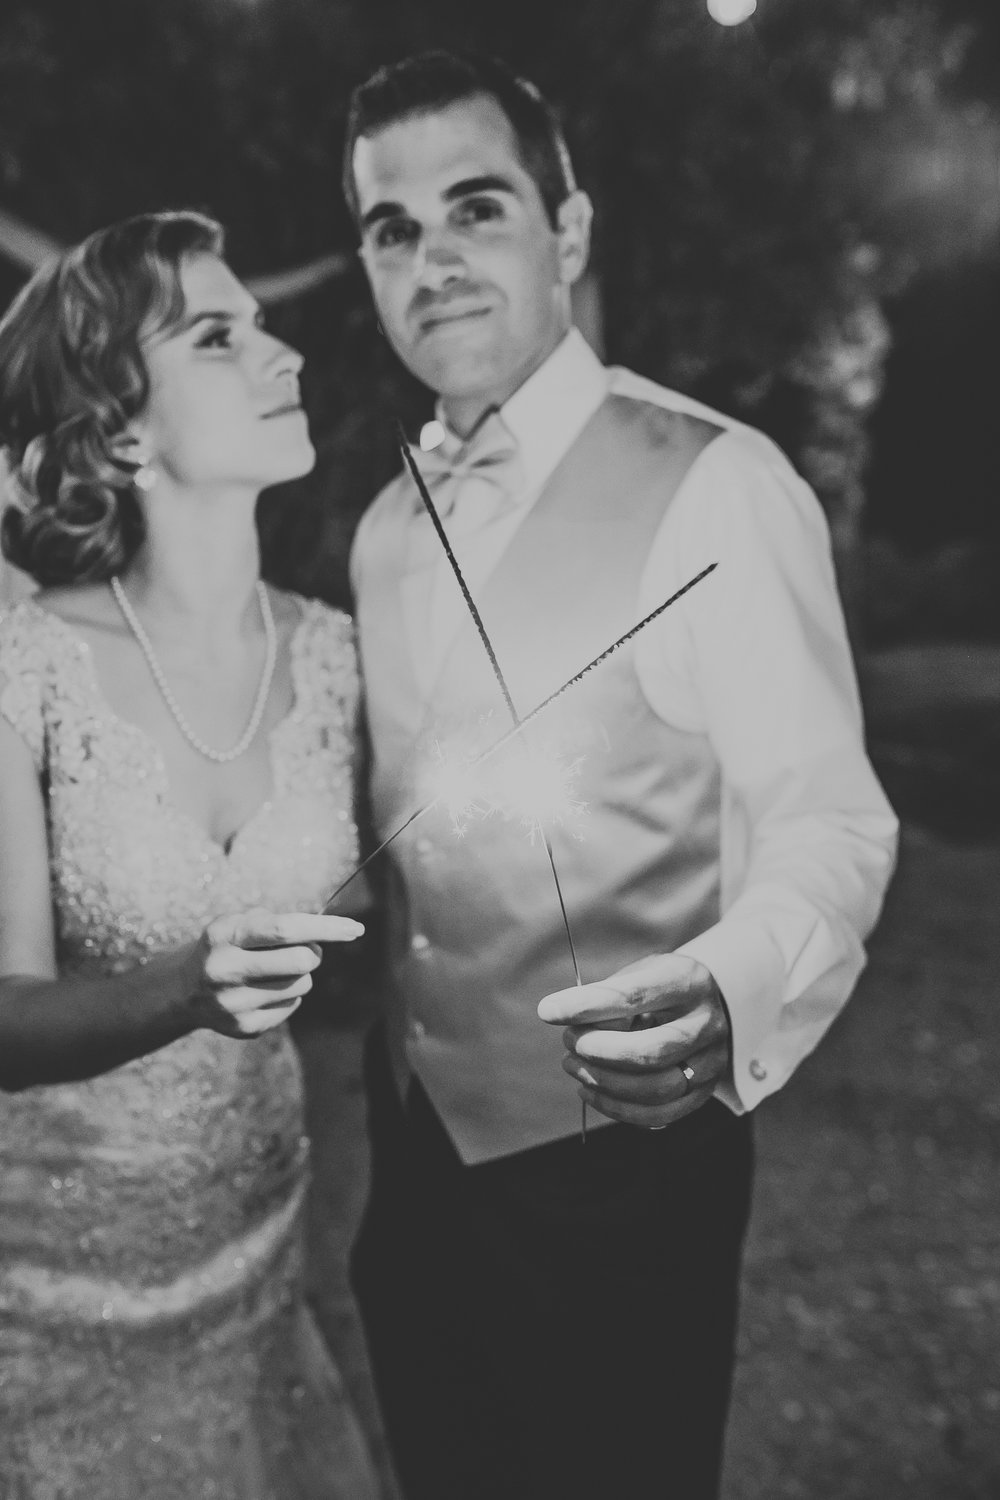 RIVERSIDE_ALYSSA_ALEX_WEDDING_2016_118.jpg